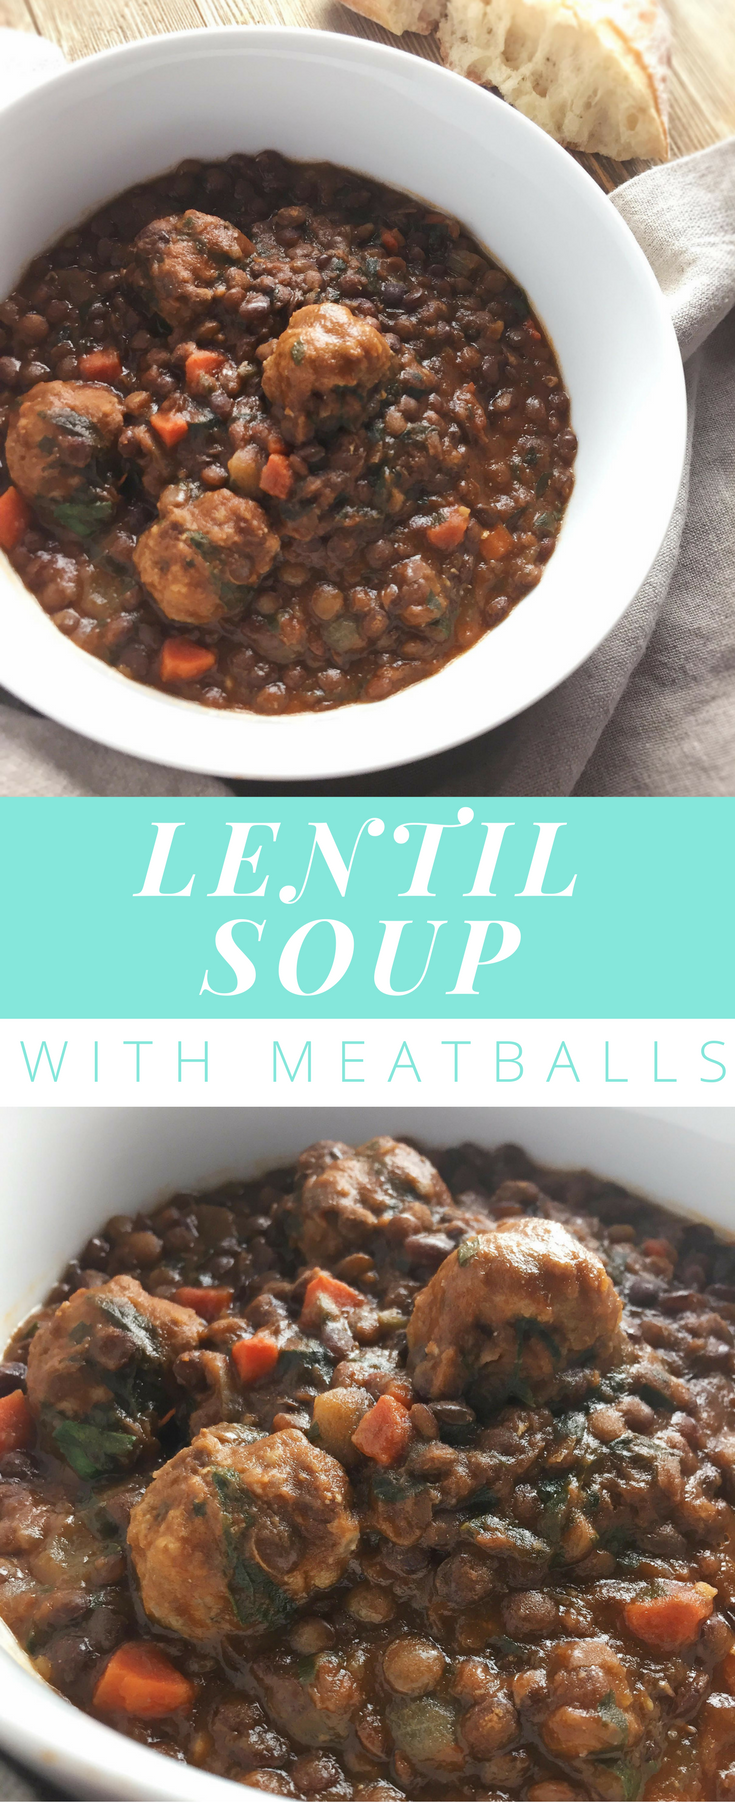 lentil-soup-with-sausage-meatballs-pinterest.png